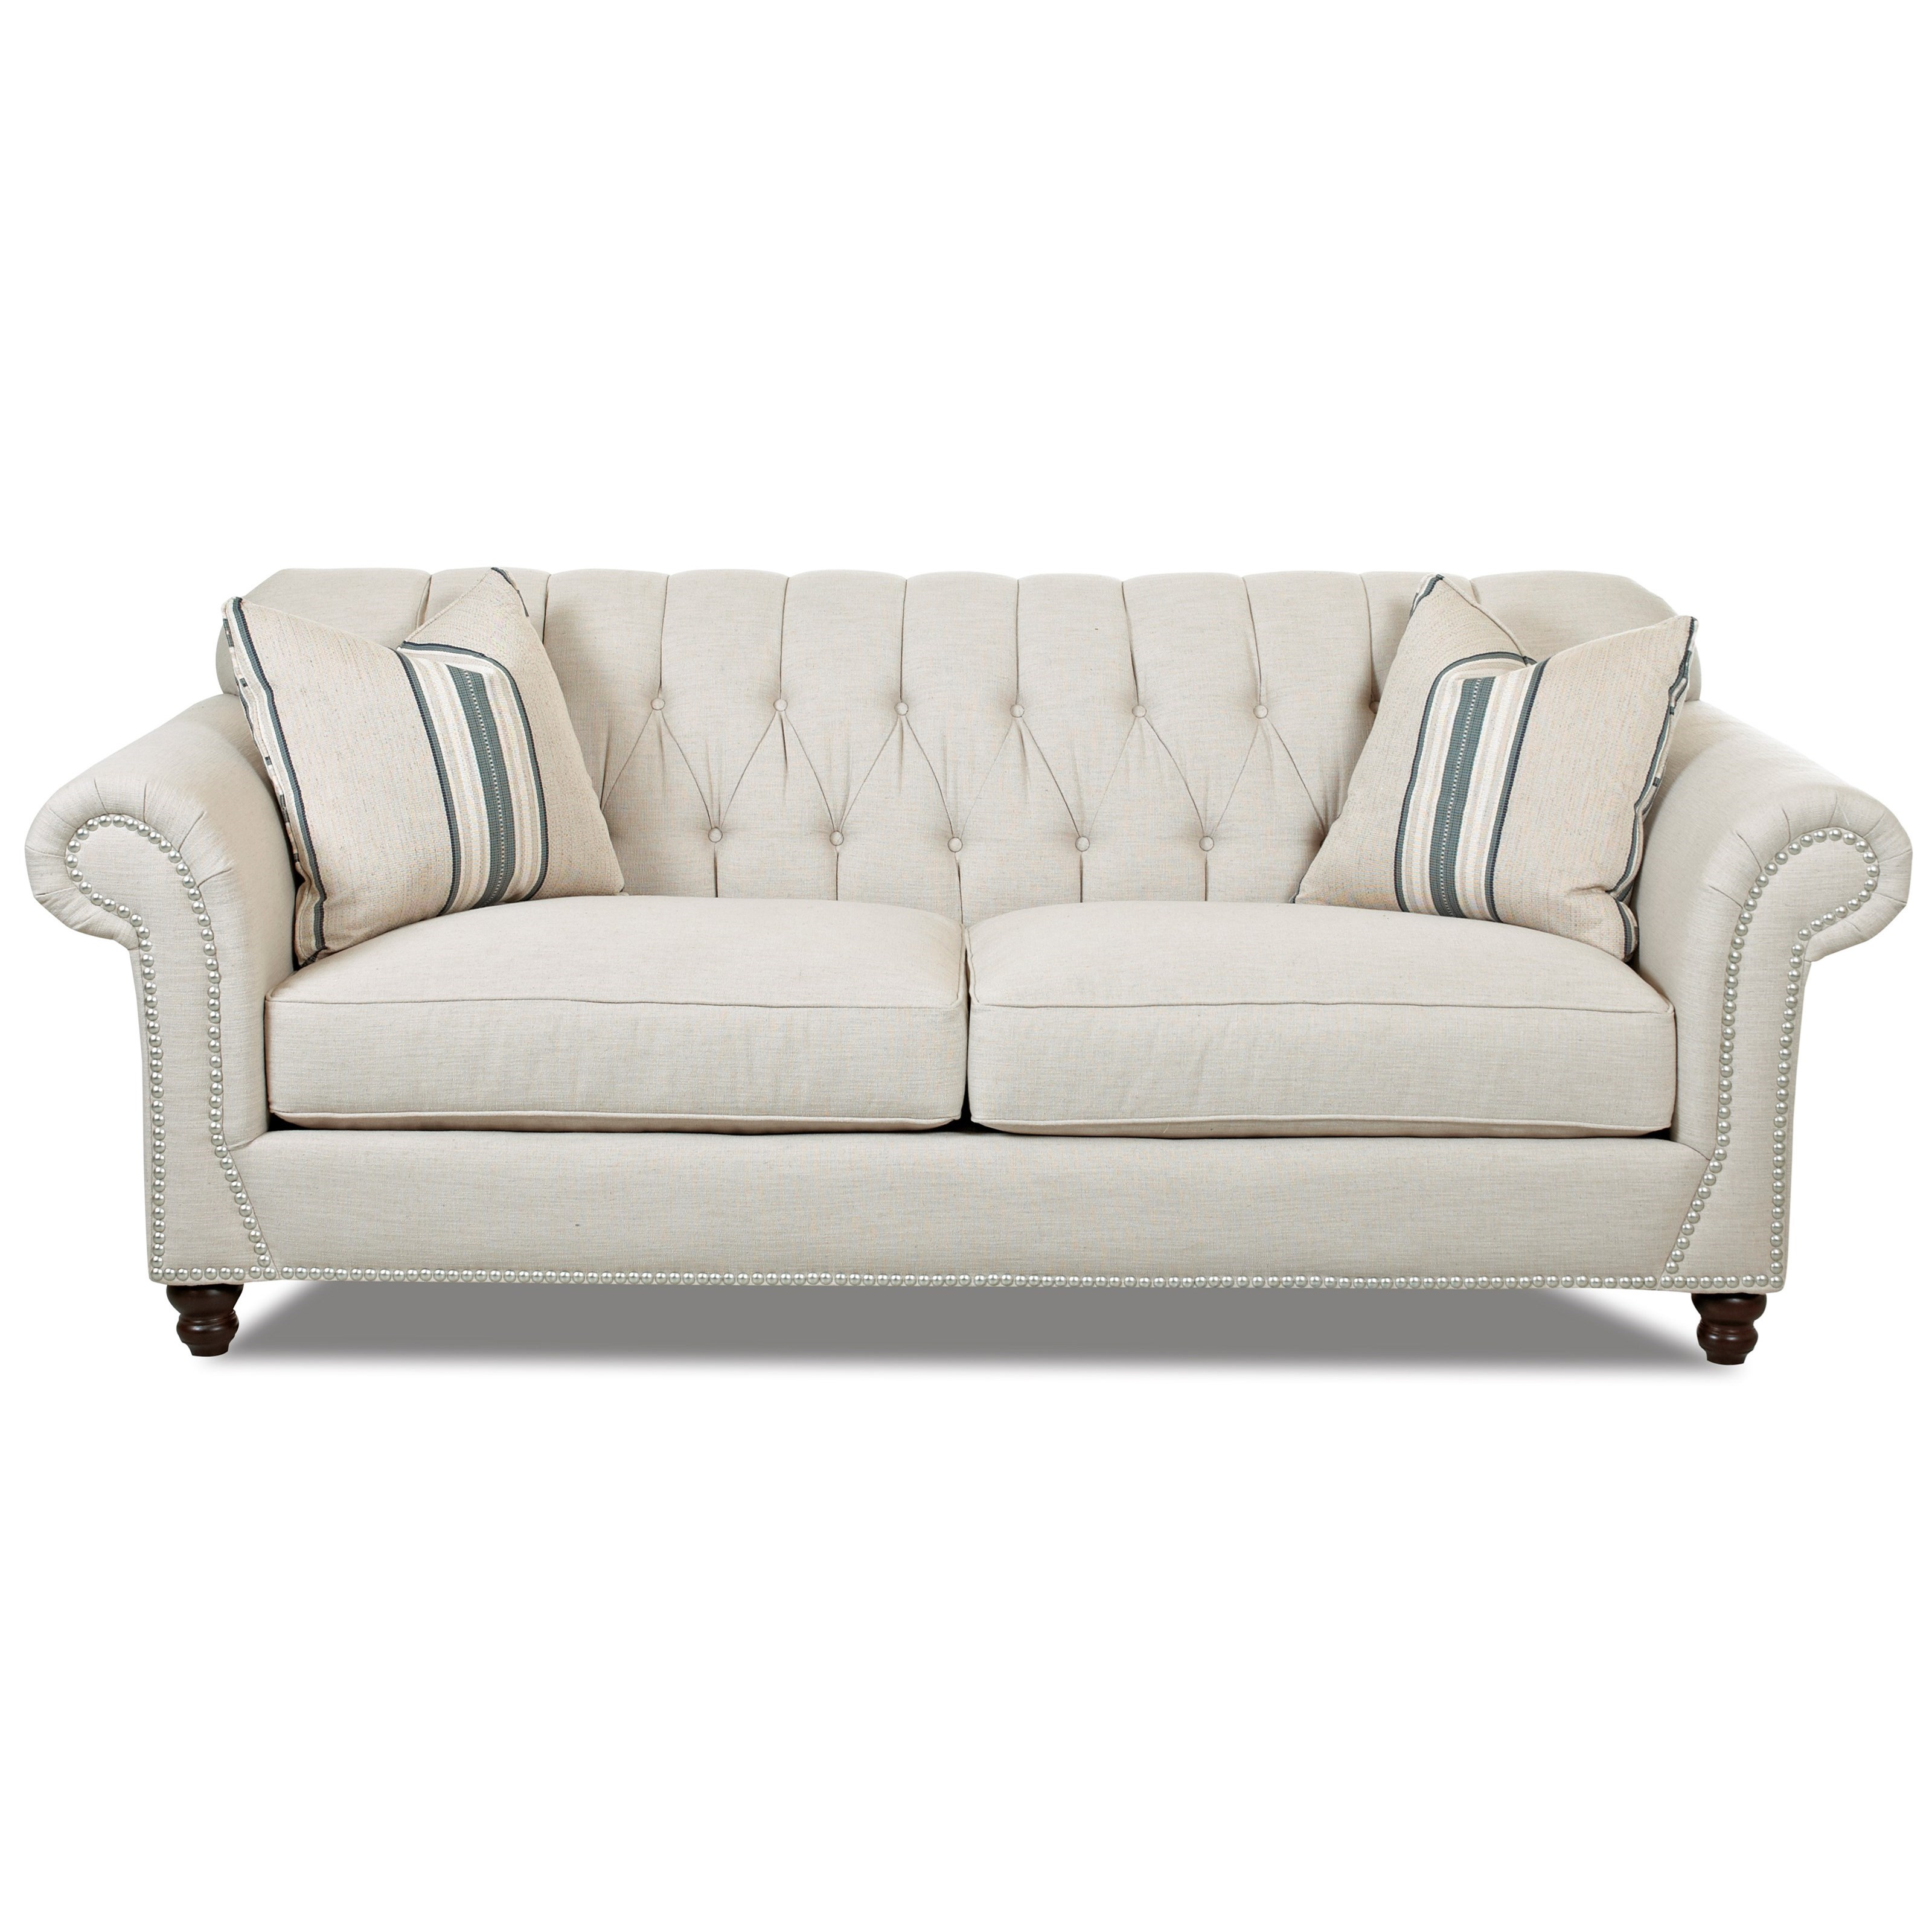 Klaussner flynn d90910p s traditional sofa with button for Traditional sofas and loveseats